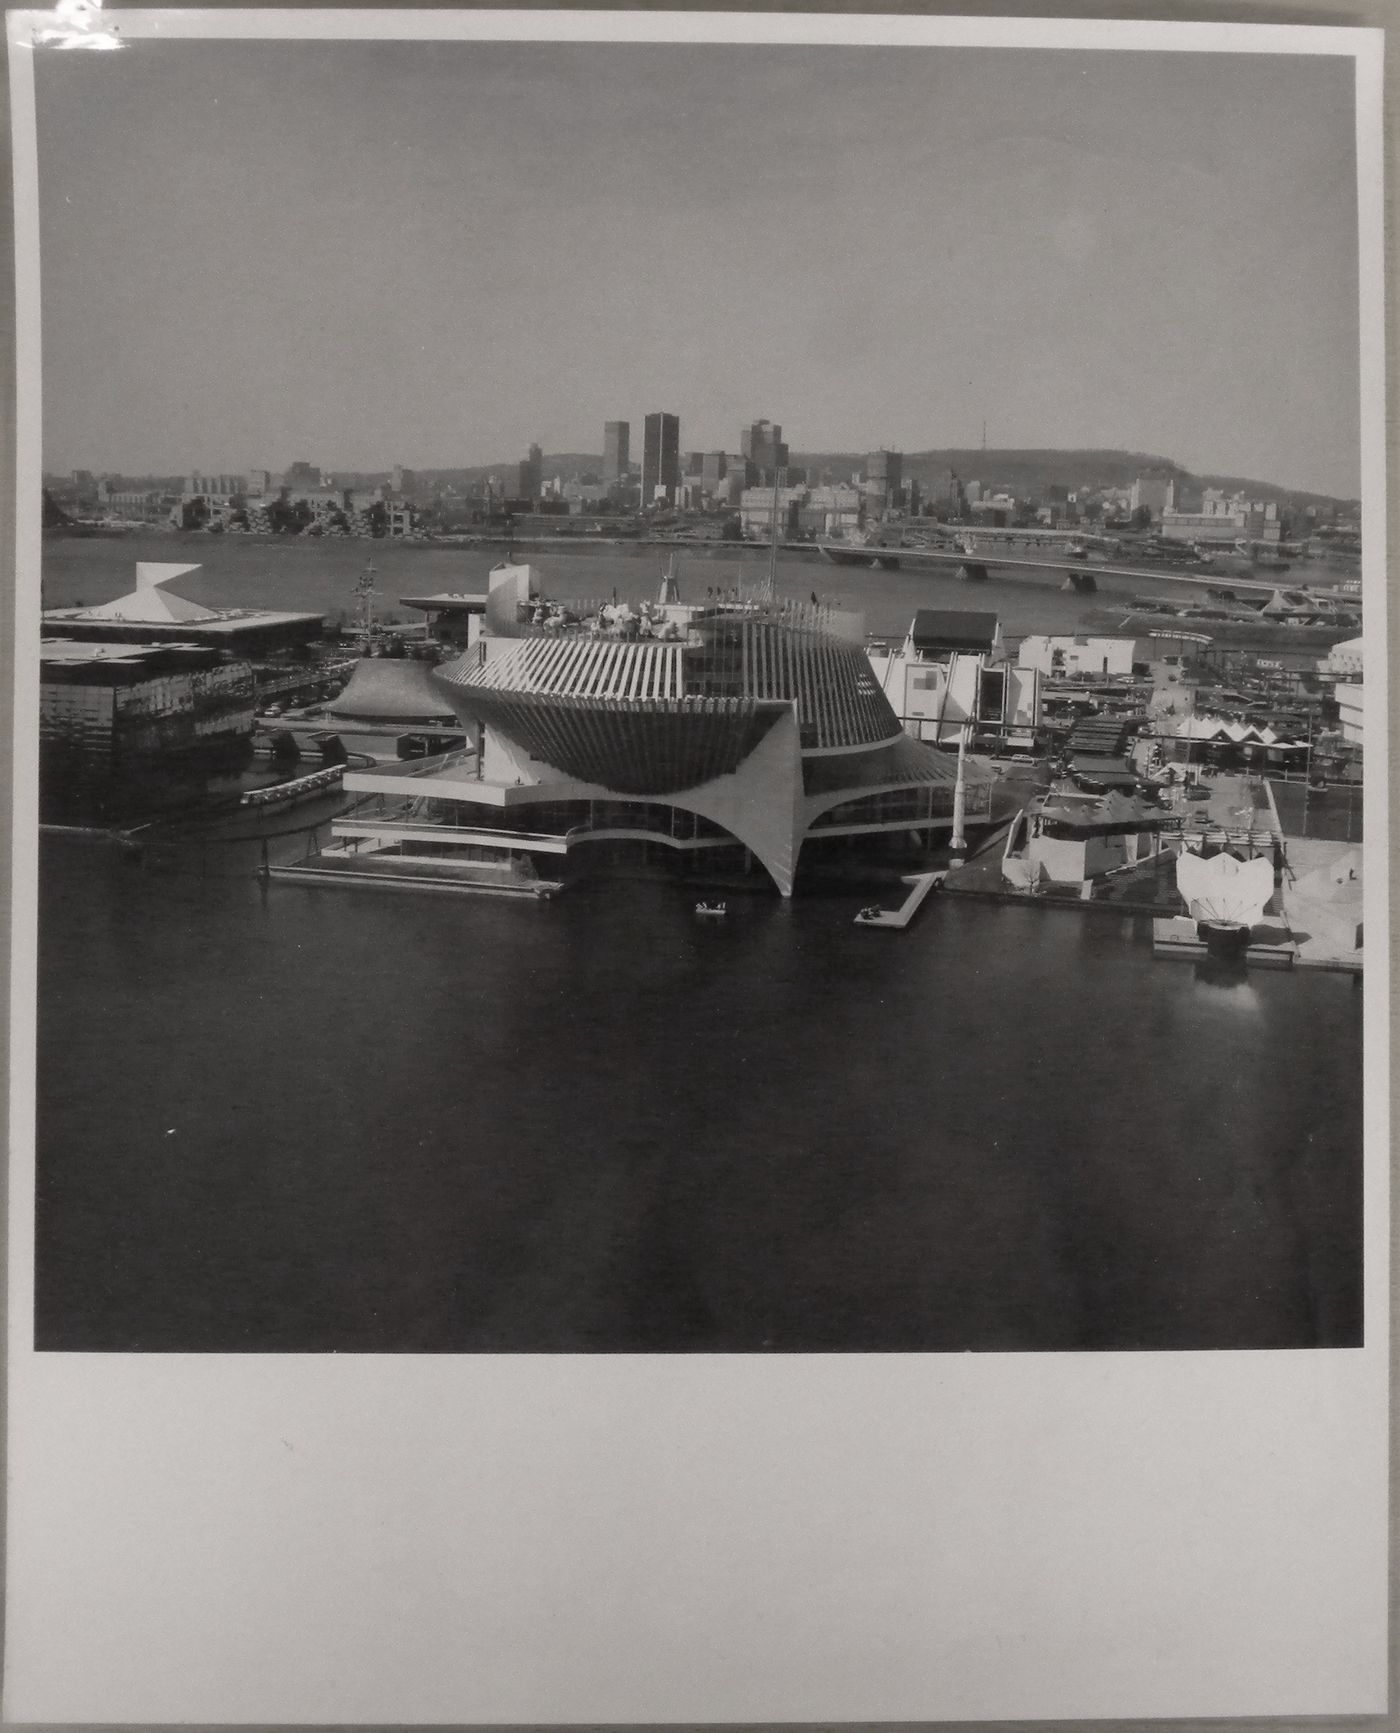 View of the Pavilion of France with Montréal in background, Expo 67, Montréal, Québec